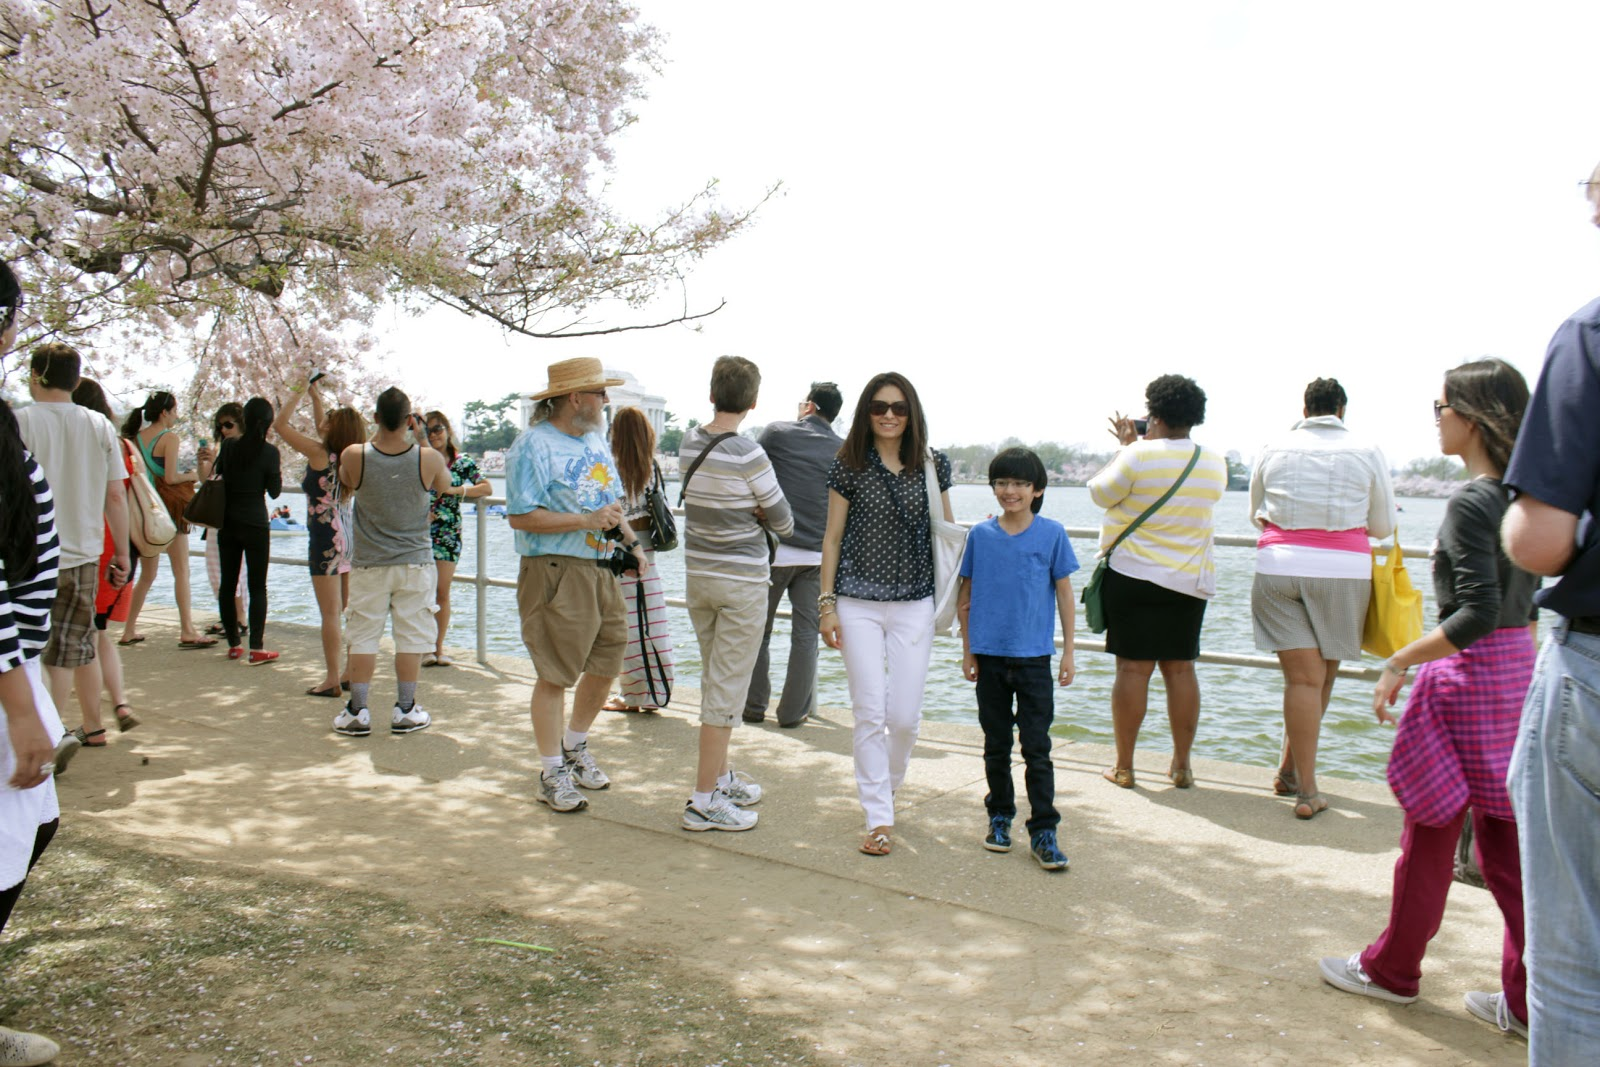 Cristina Garay and son during cherry blossom festival DC